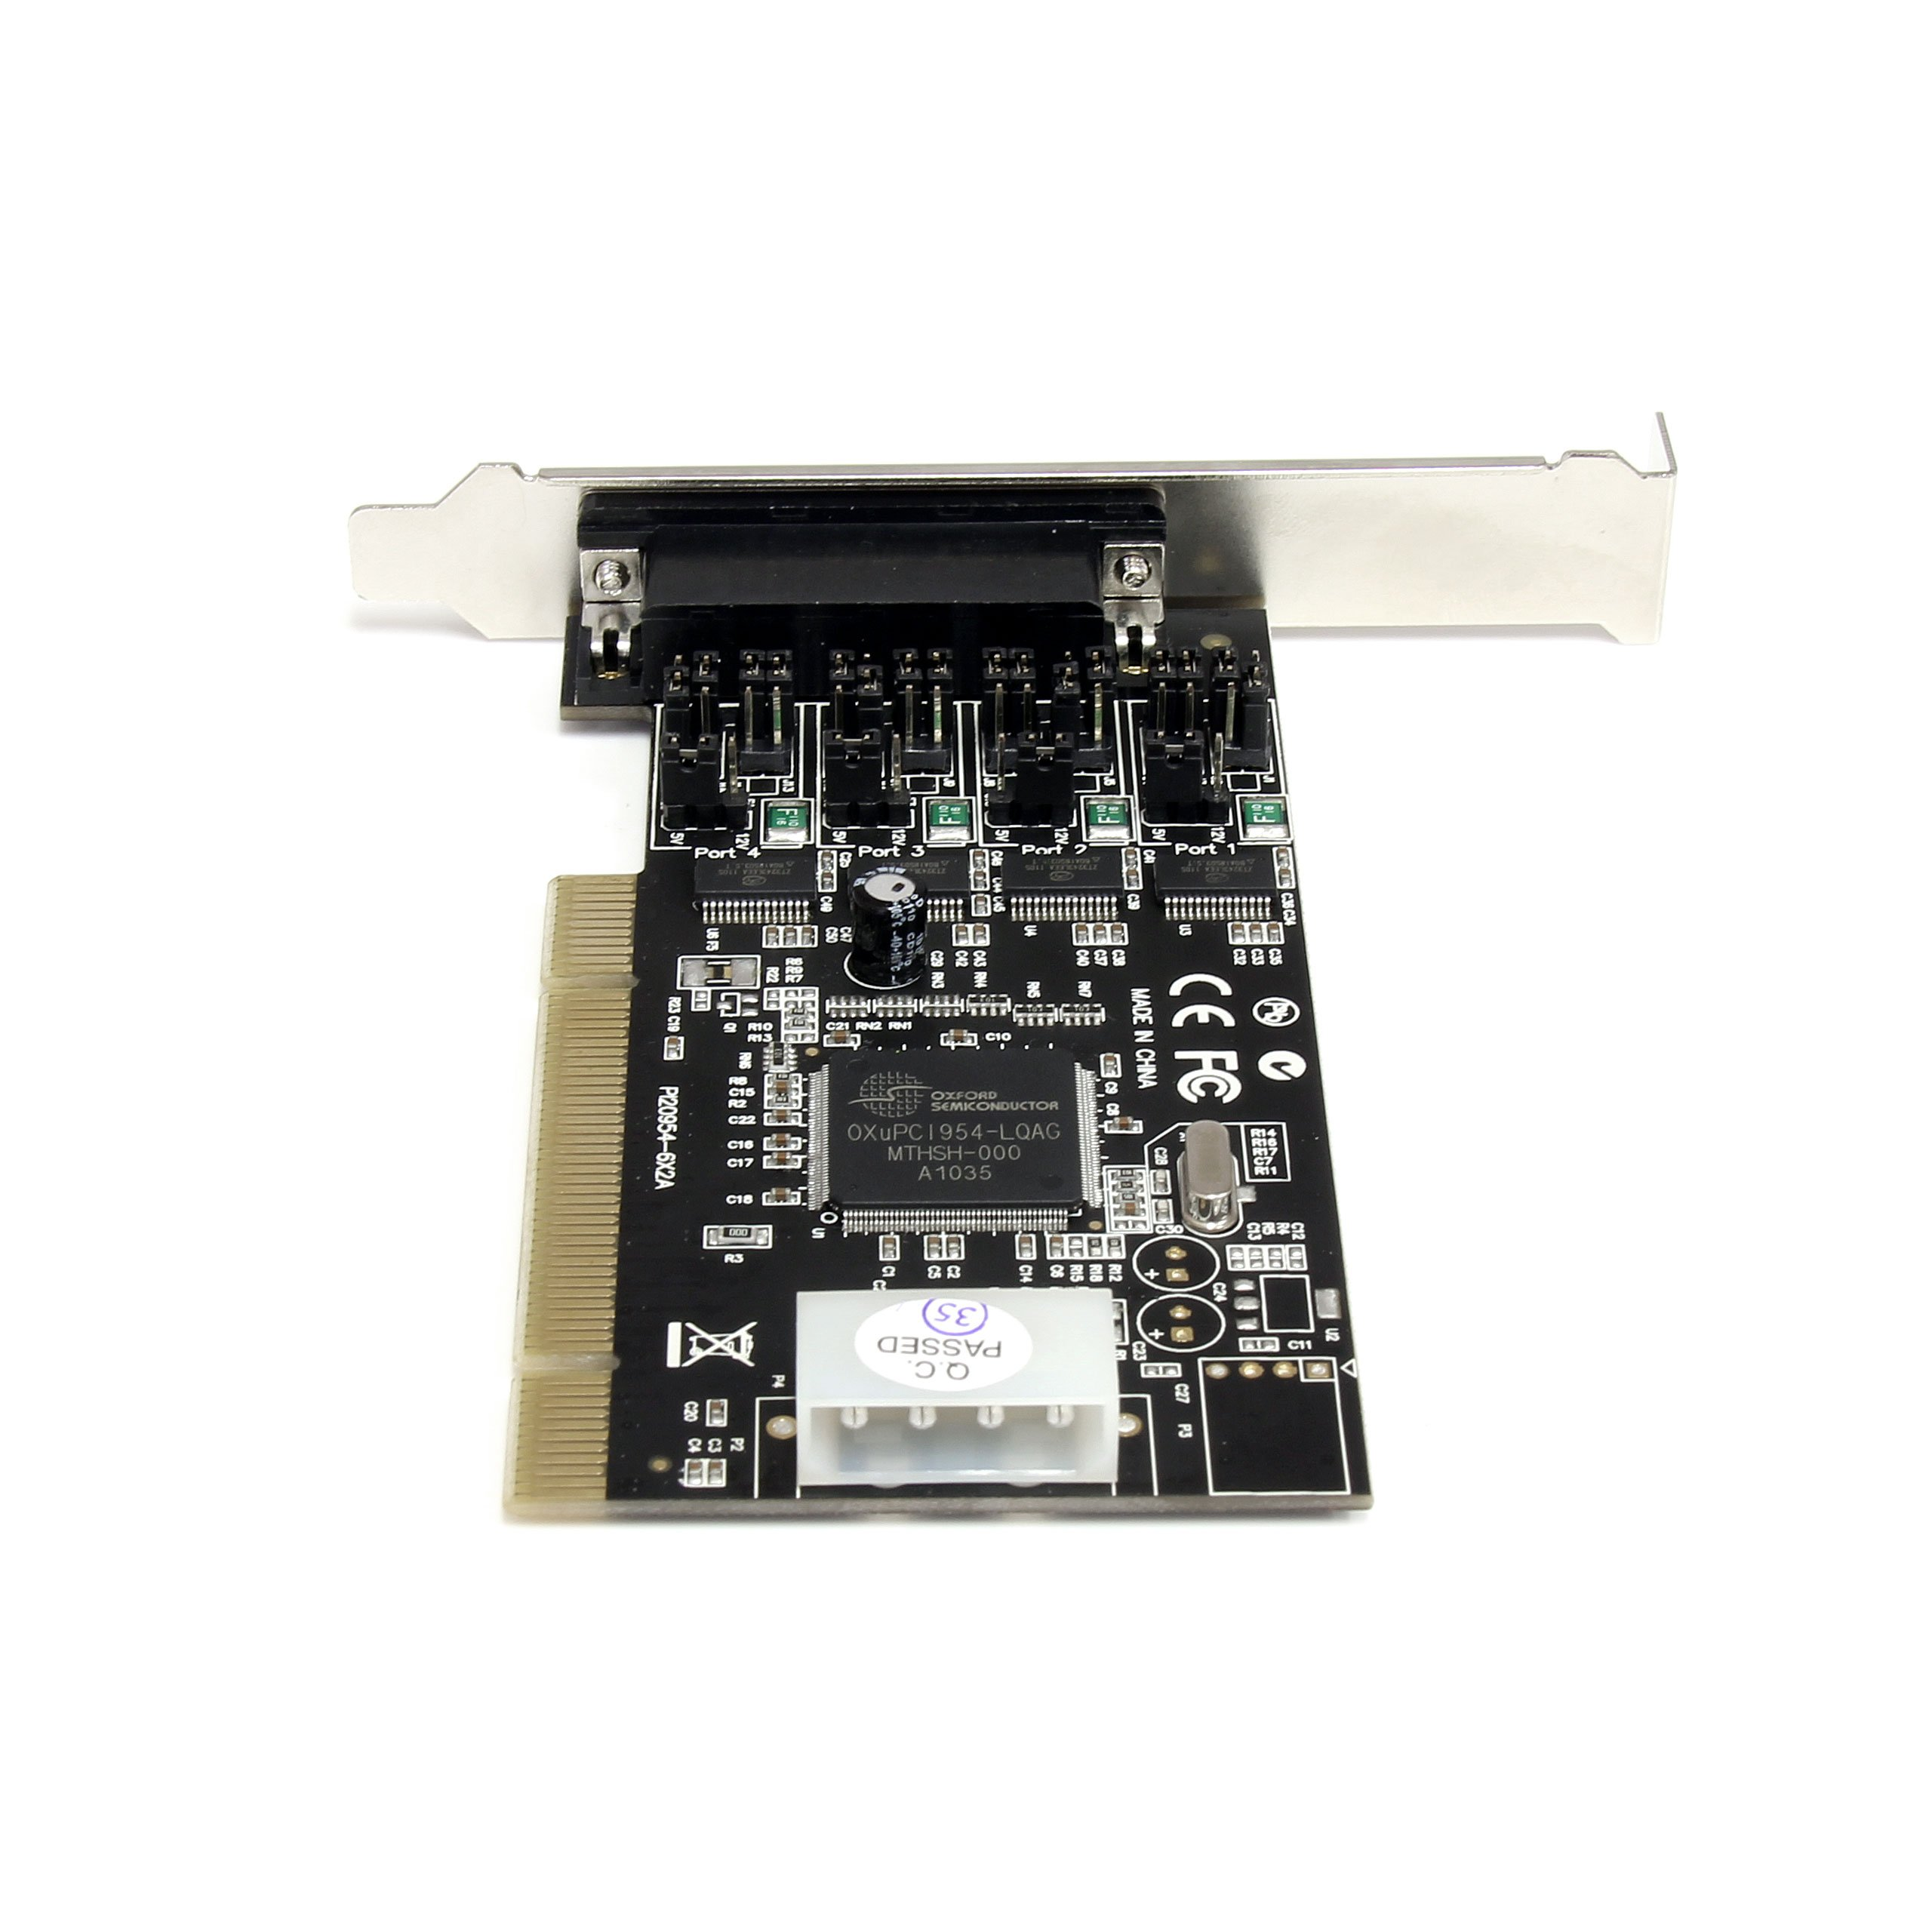 StarTech.com 4 Port RS232 PCI Serial Card Adapter with Power Output Components Black by StarTech (Image #5)